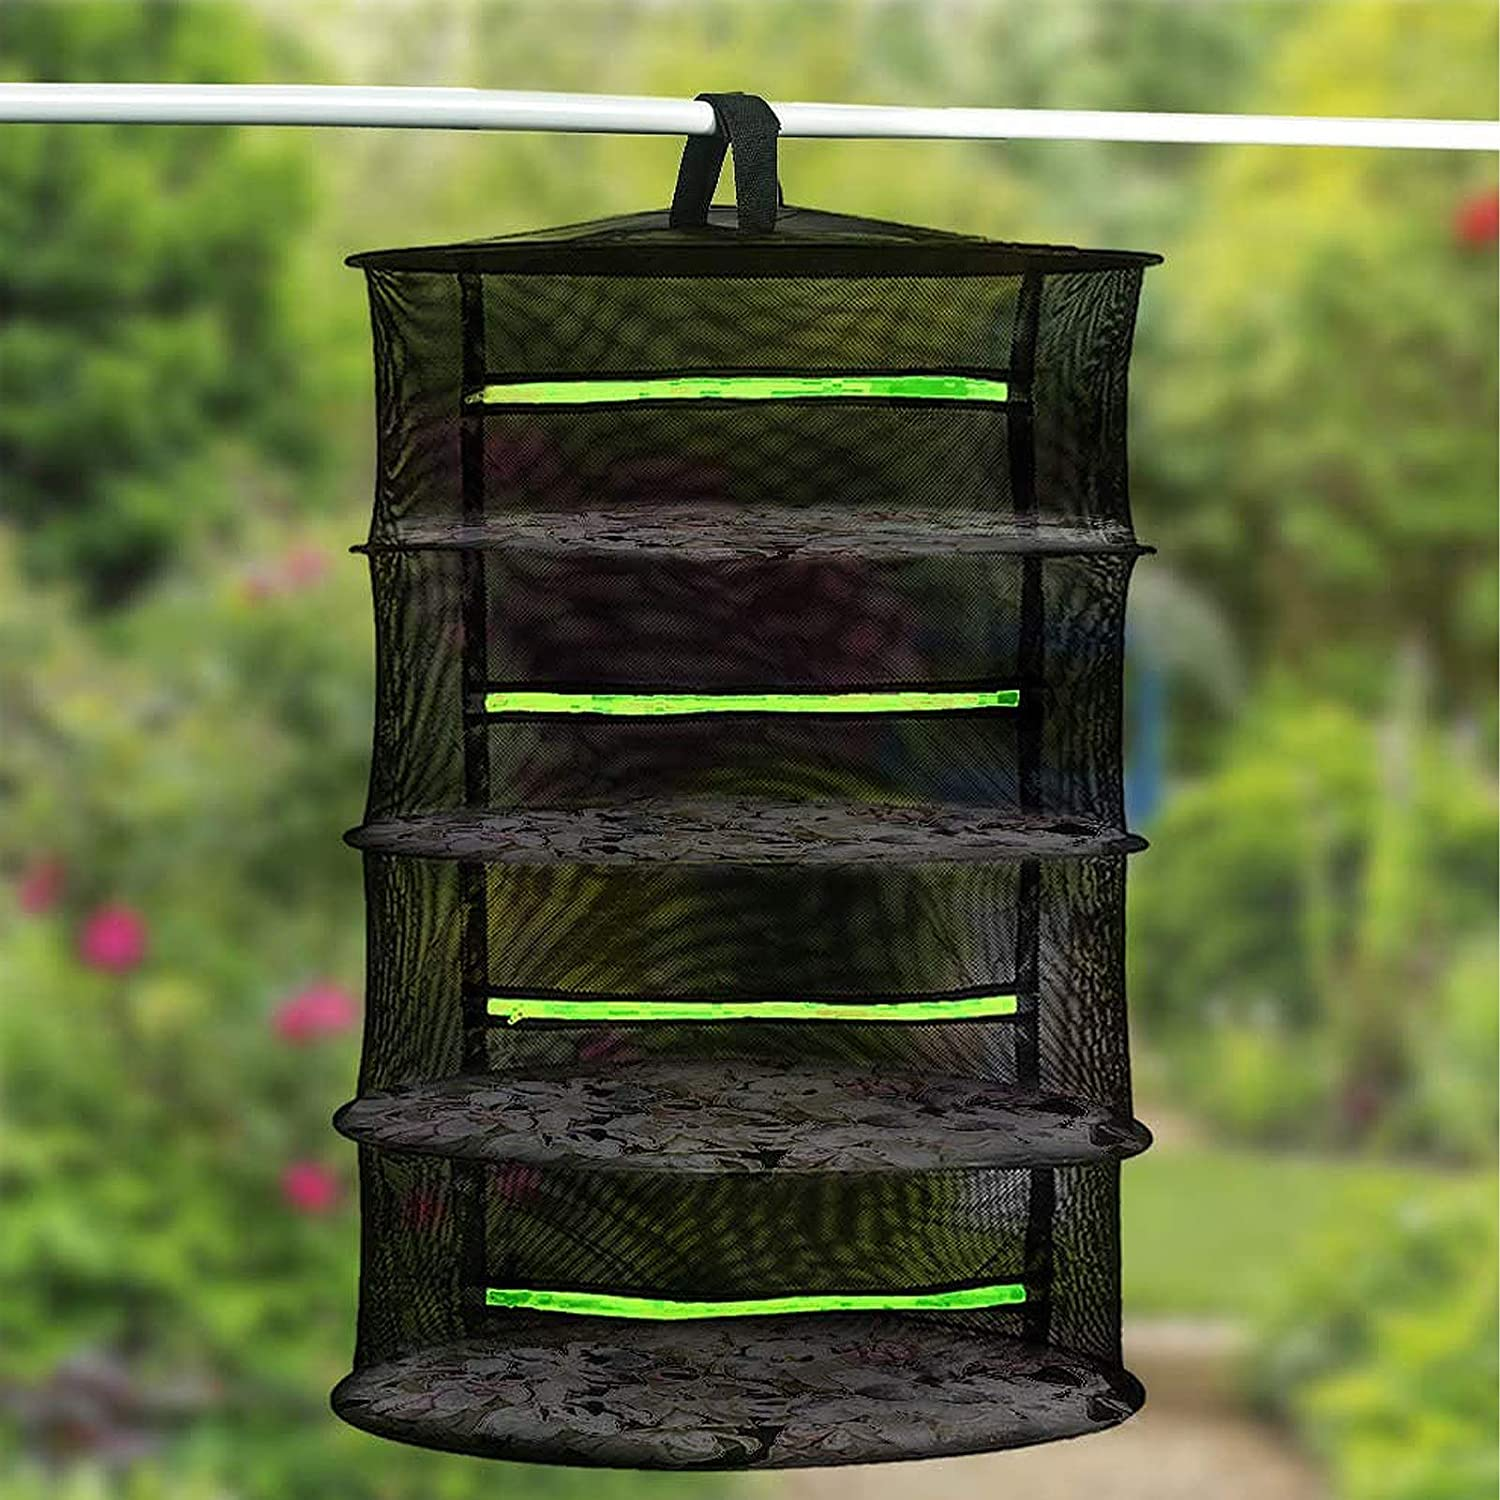 Herb Drying Rack Hanging Plant and Bud Drying Rack 2ft 4 Layer Mesh Hanging Plant Dry Net for Drying Seeds Herb Bud Hydroponic Plants